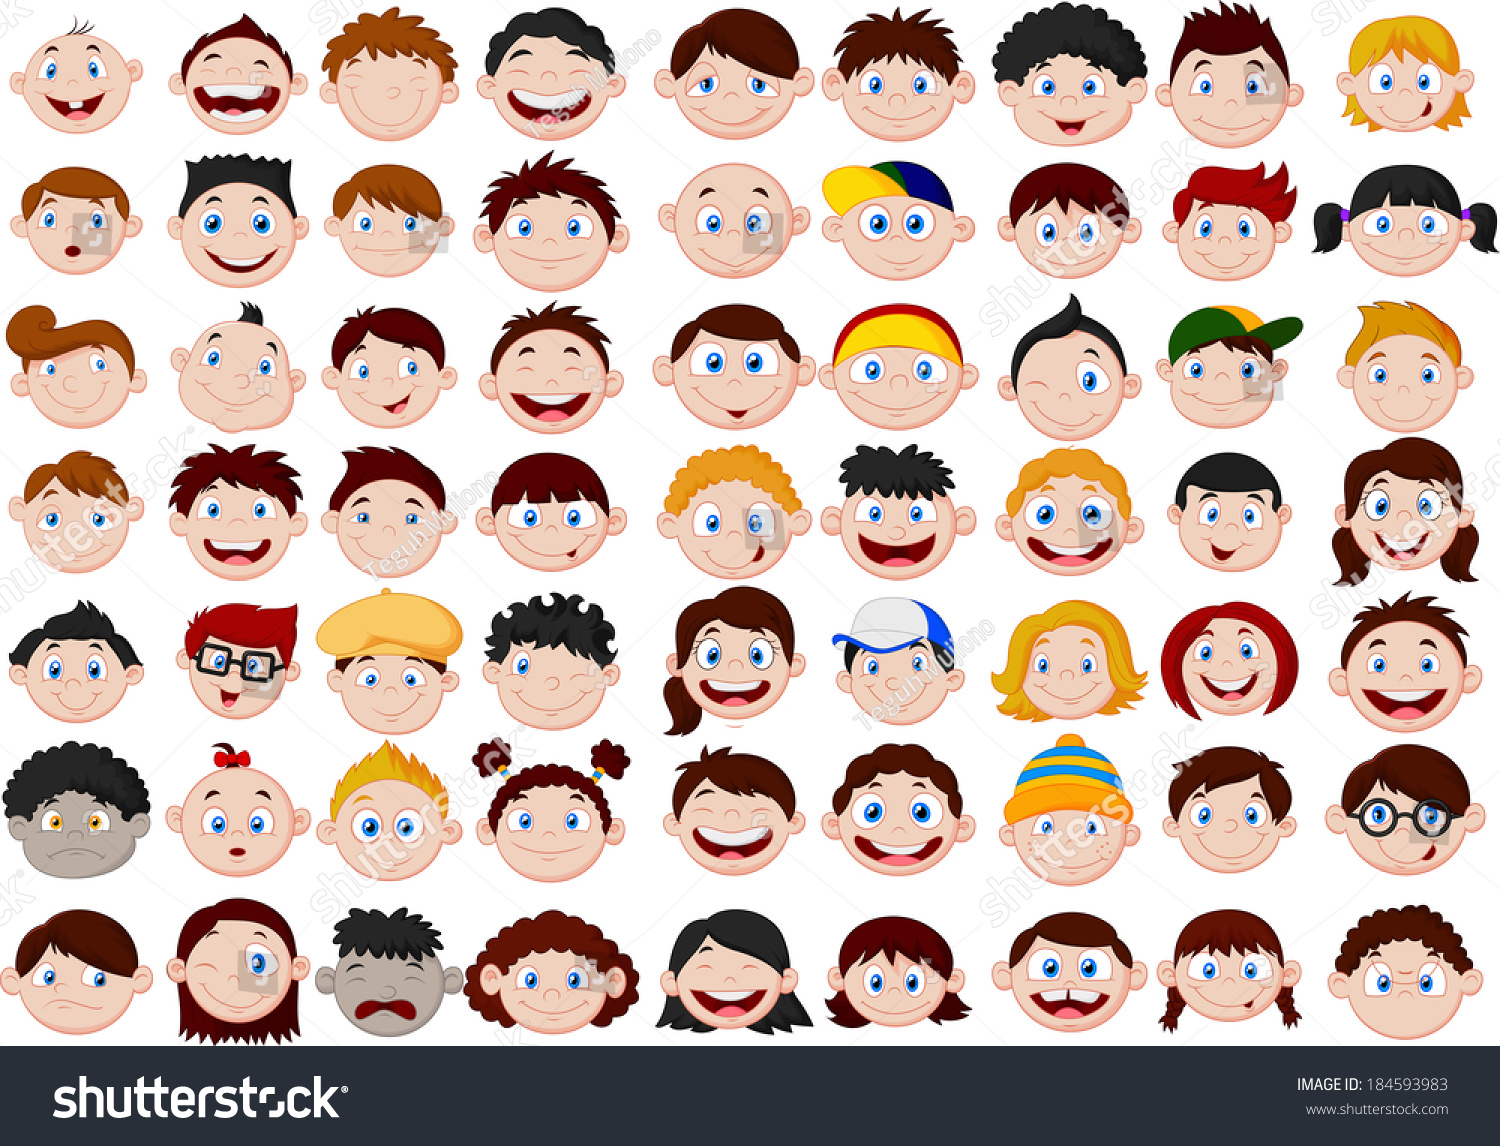 Set Of Cartoon Childrens Faces Stock Vector Art More: Set Cartoon Children Head Stock Vector 184593983